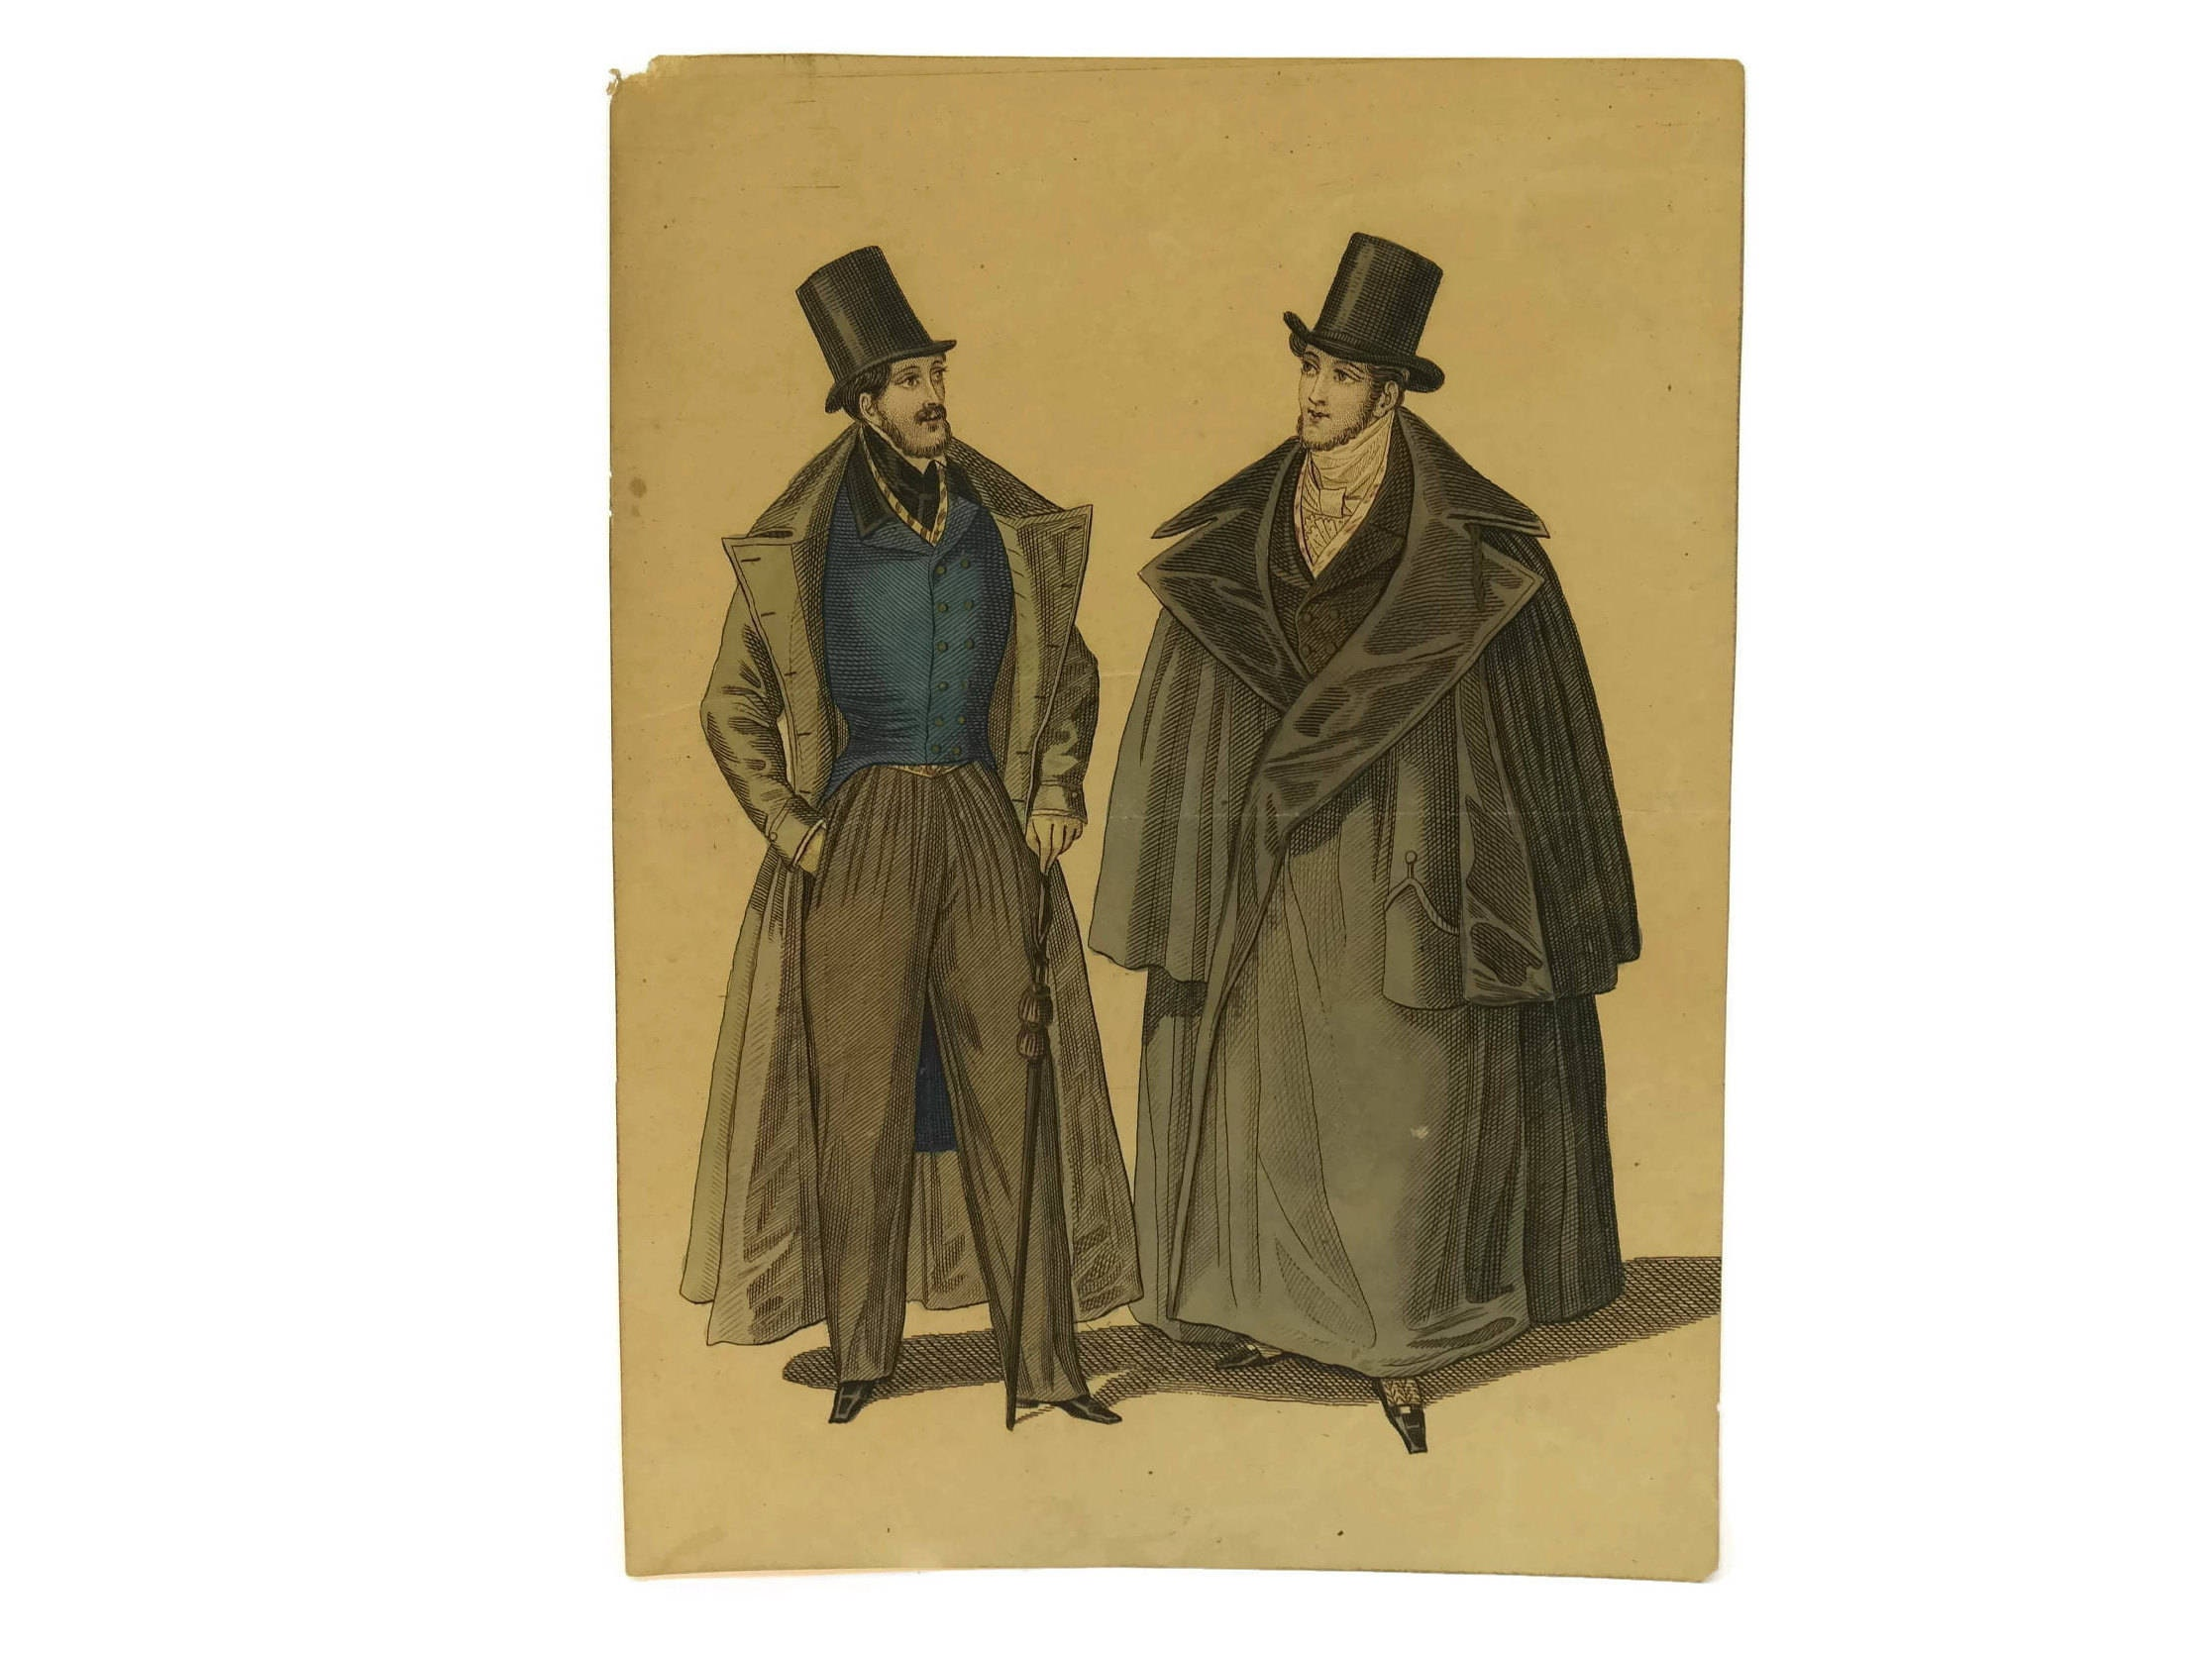 1800s fashion for men 98